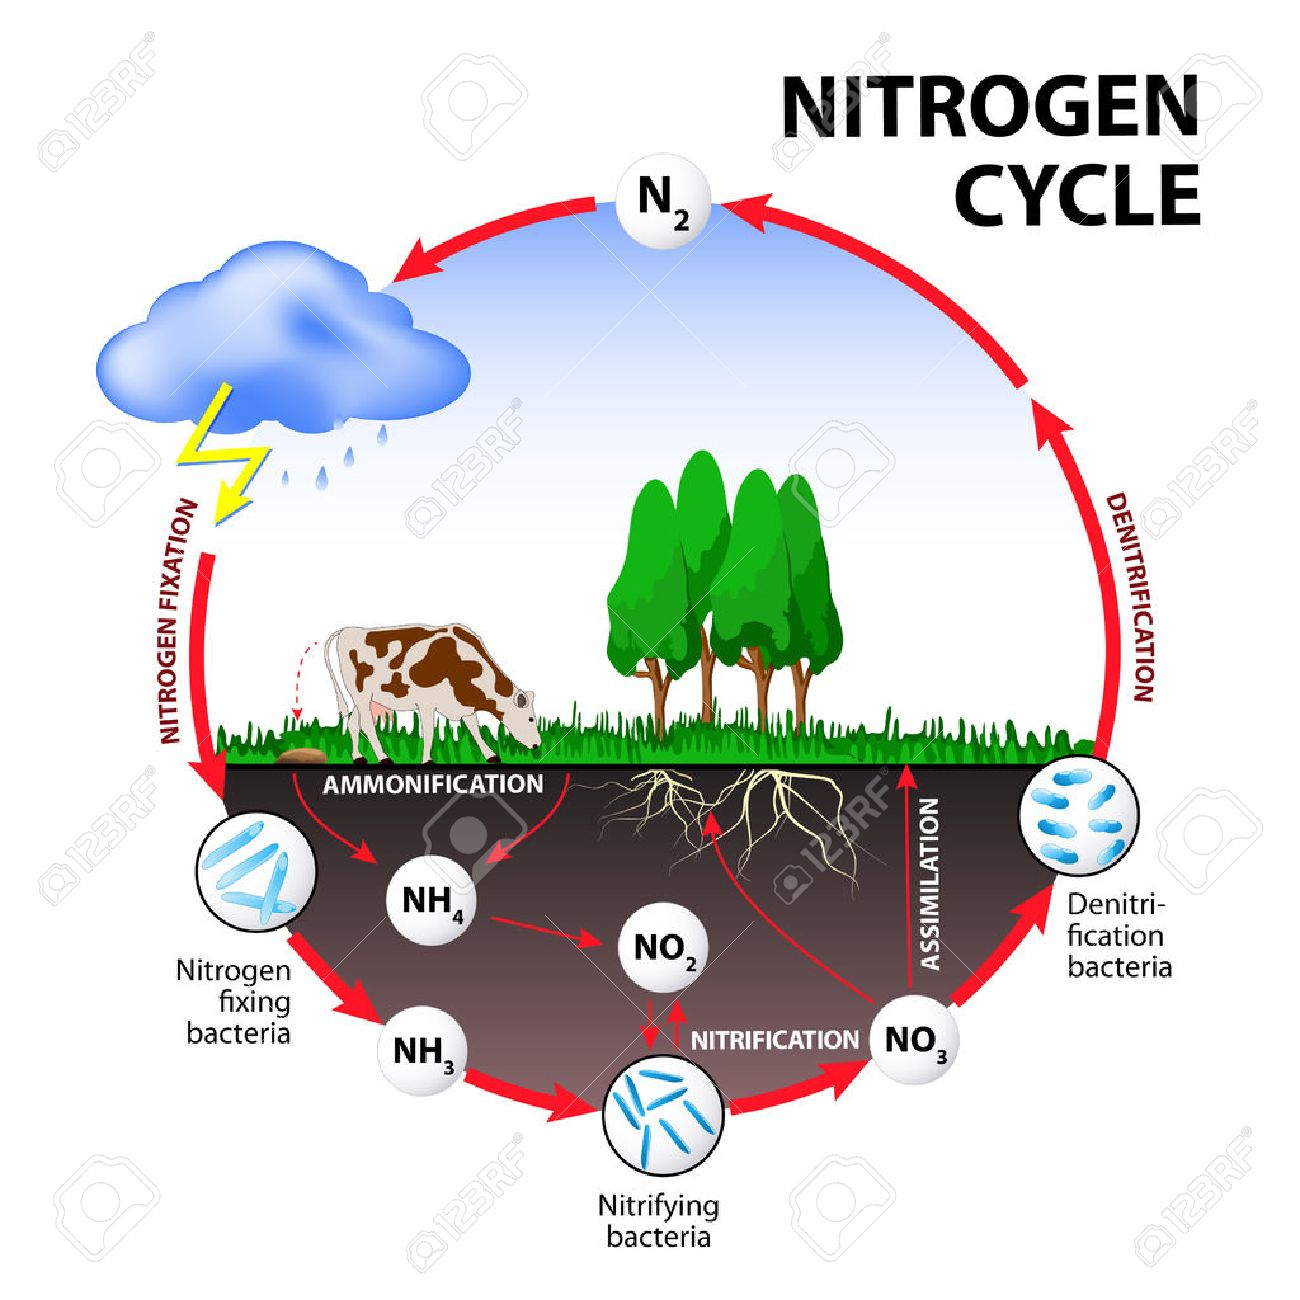 nitrogen cycle the processes of the nitrogen cycle transform well labeled diagram of nitrogen cycle nitrogen cycle the processes of the nitrogen cycle transform nitrogen from one form to another